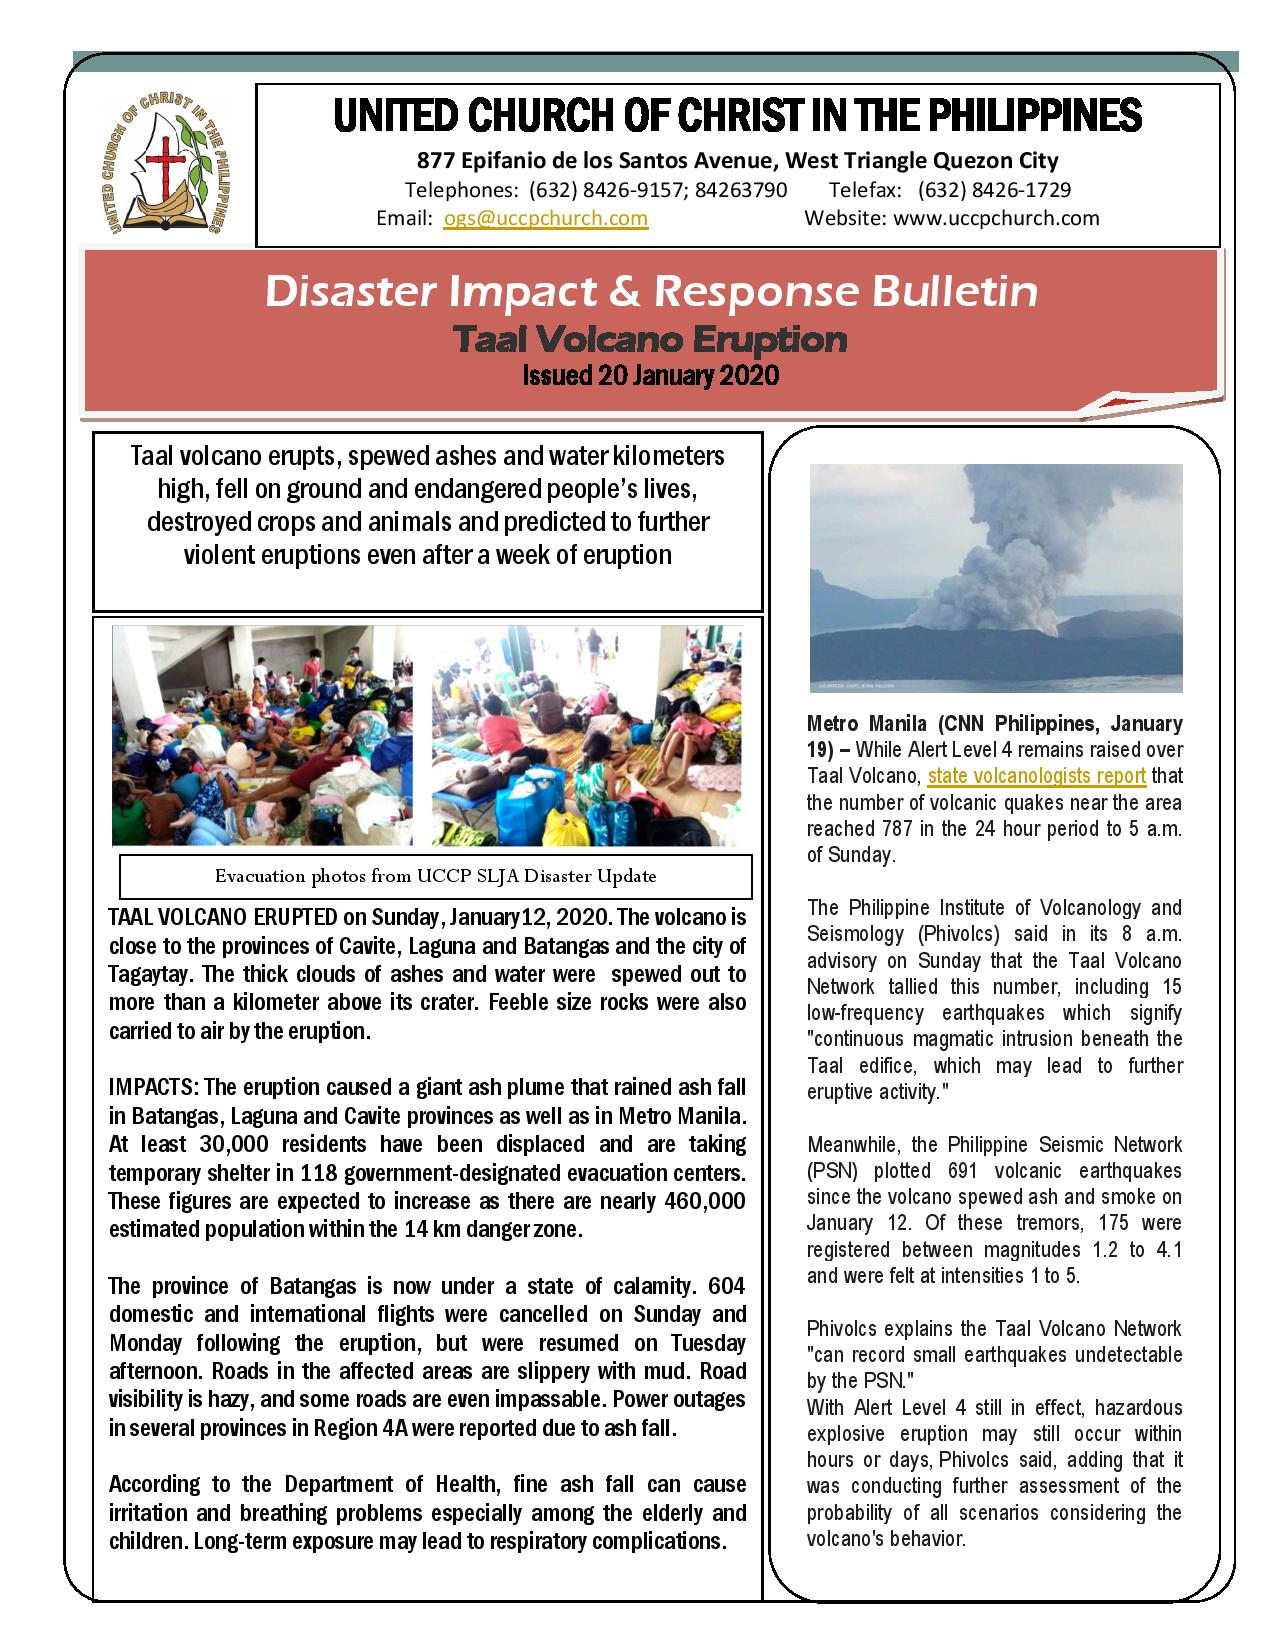 2020-Disaster-Impact-Response-Bulletin -TAAL VOLCANO ERUPTION-Edited-page-001